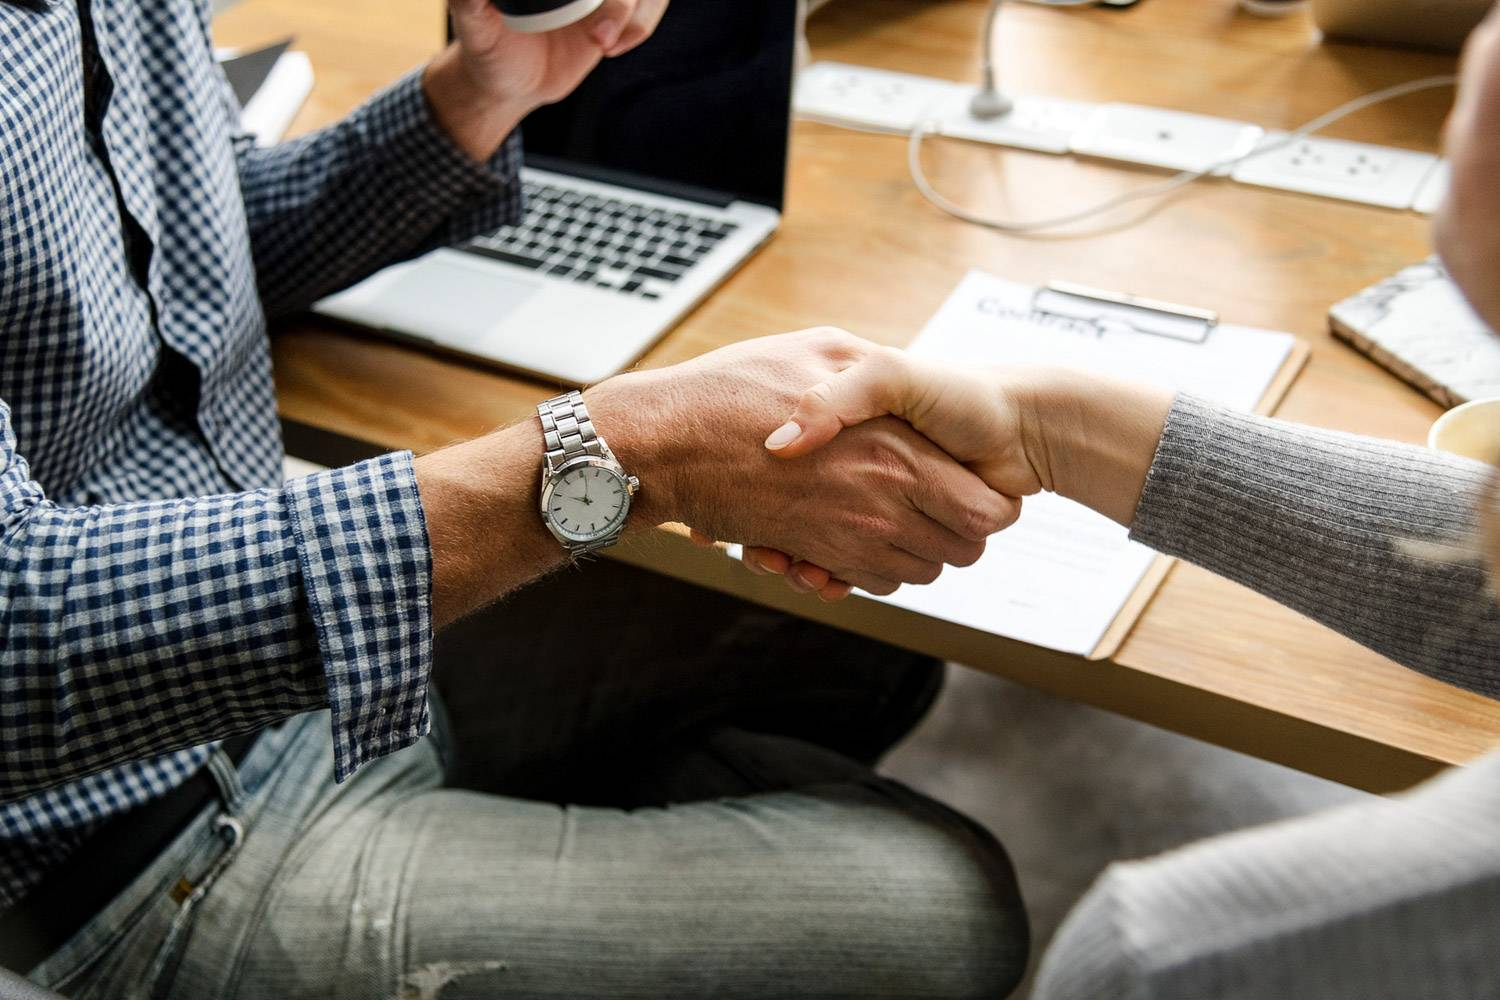 Image of two people shaking hands over a laptop and documents.